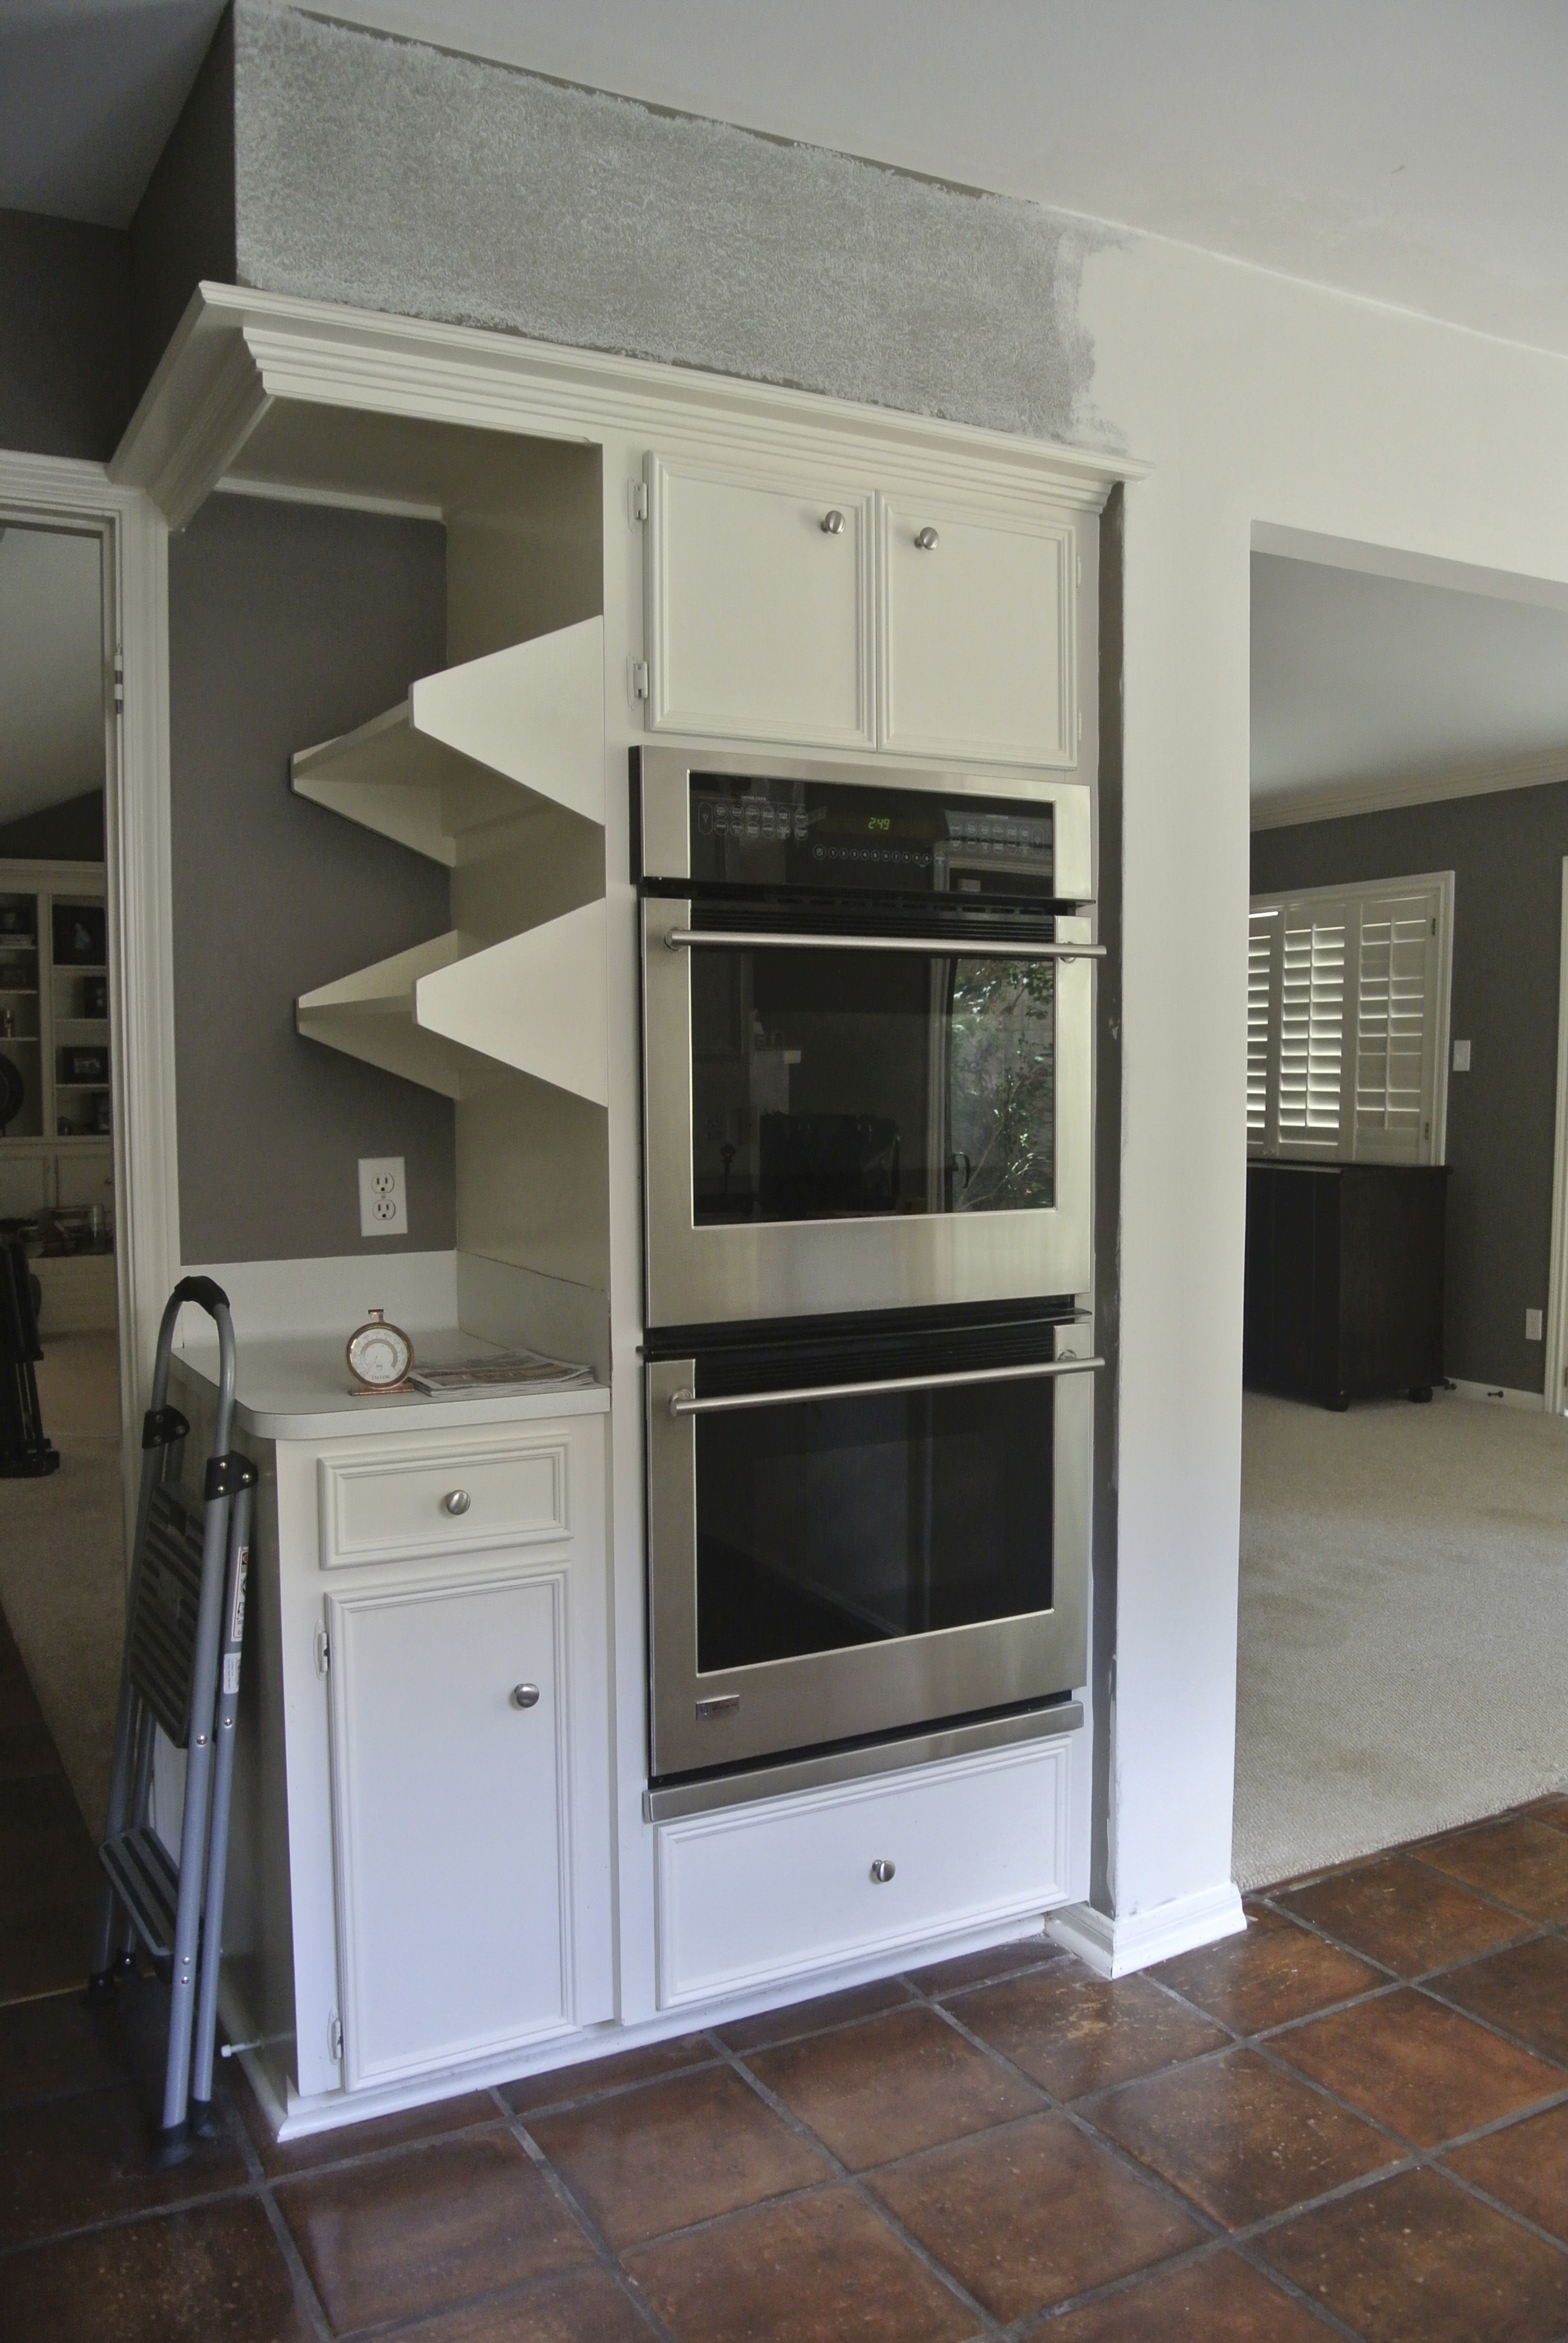 Torsion Box Floating Shelves Into Side Of Kitchen Cabinets Woodweb S Cabinet And Millwork Installation Forum